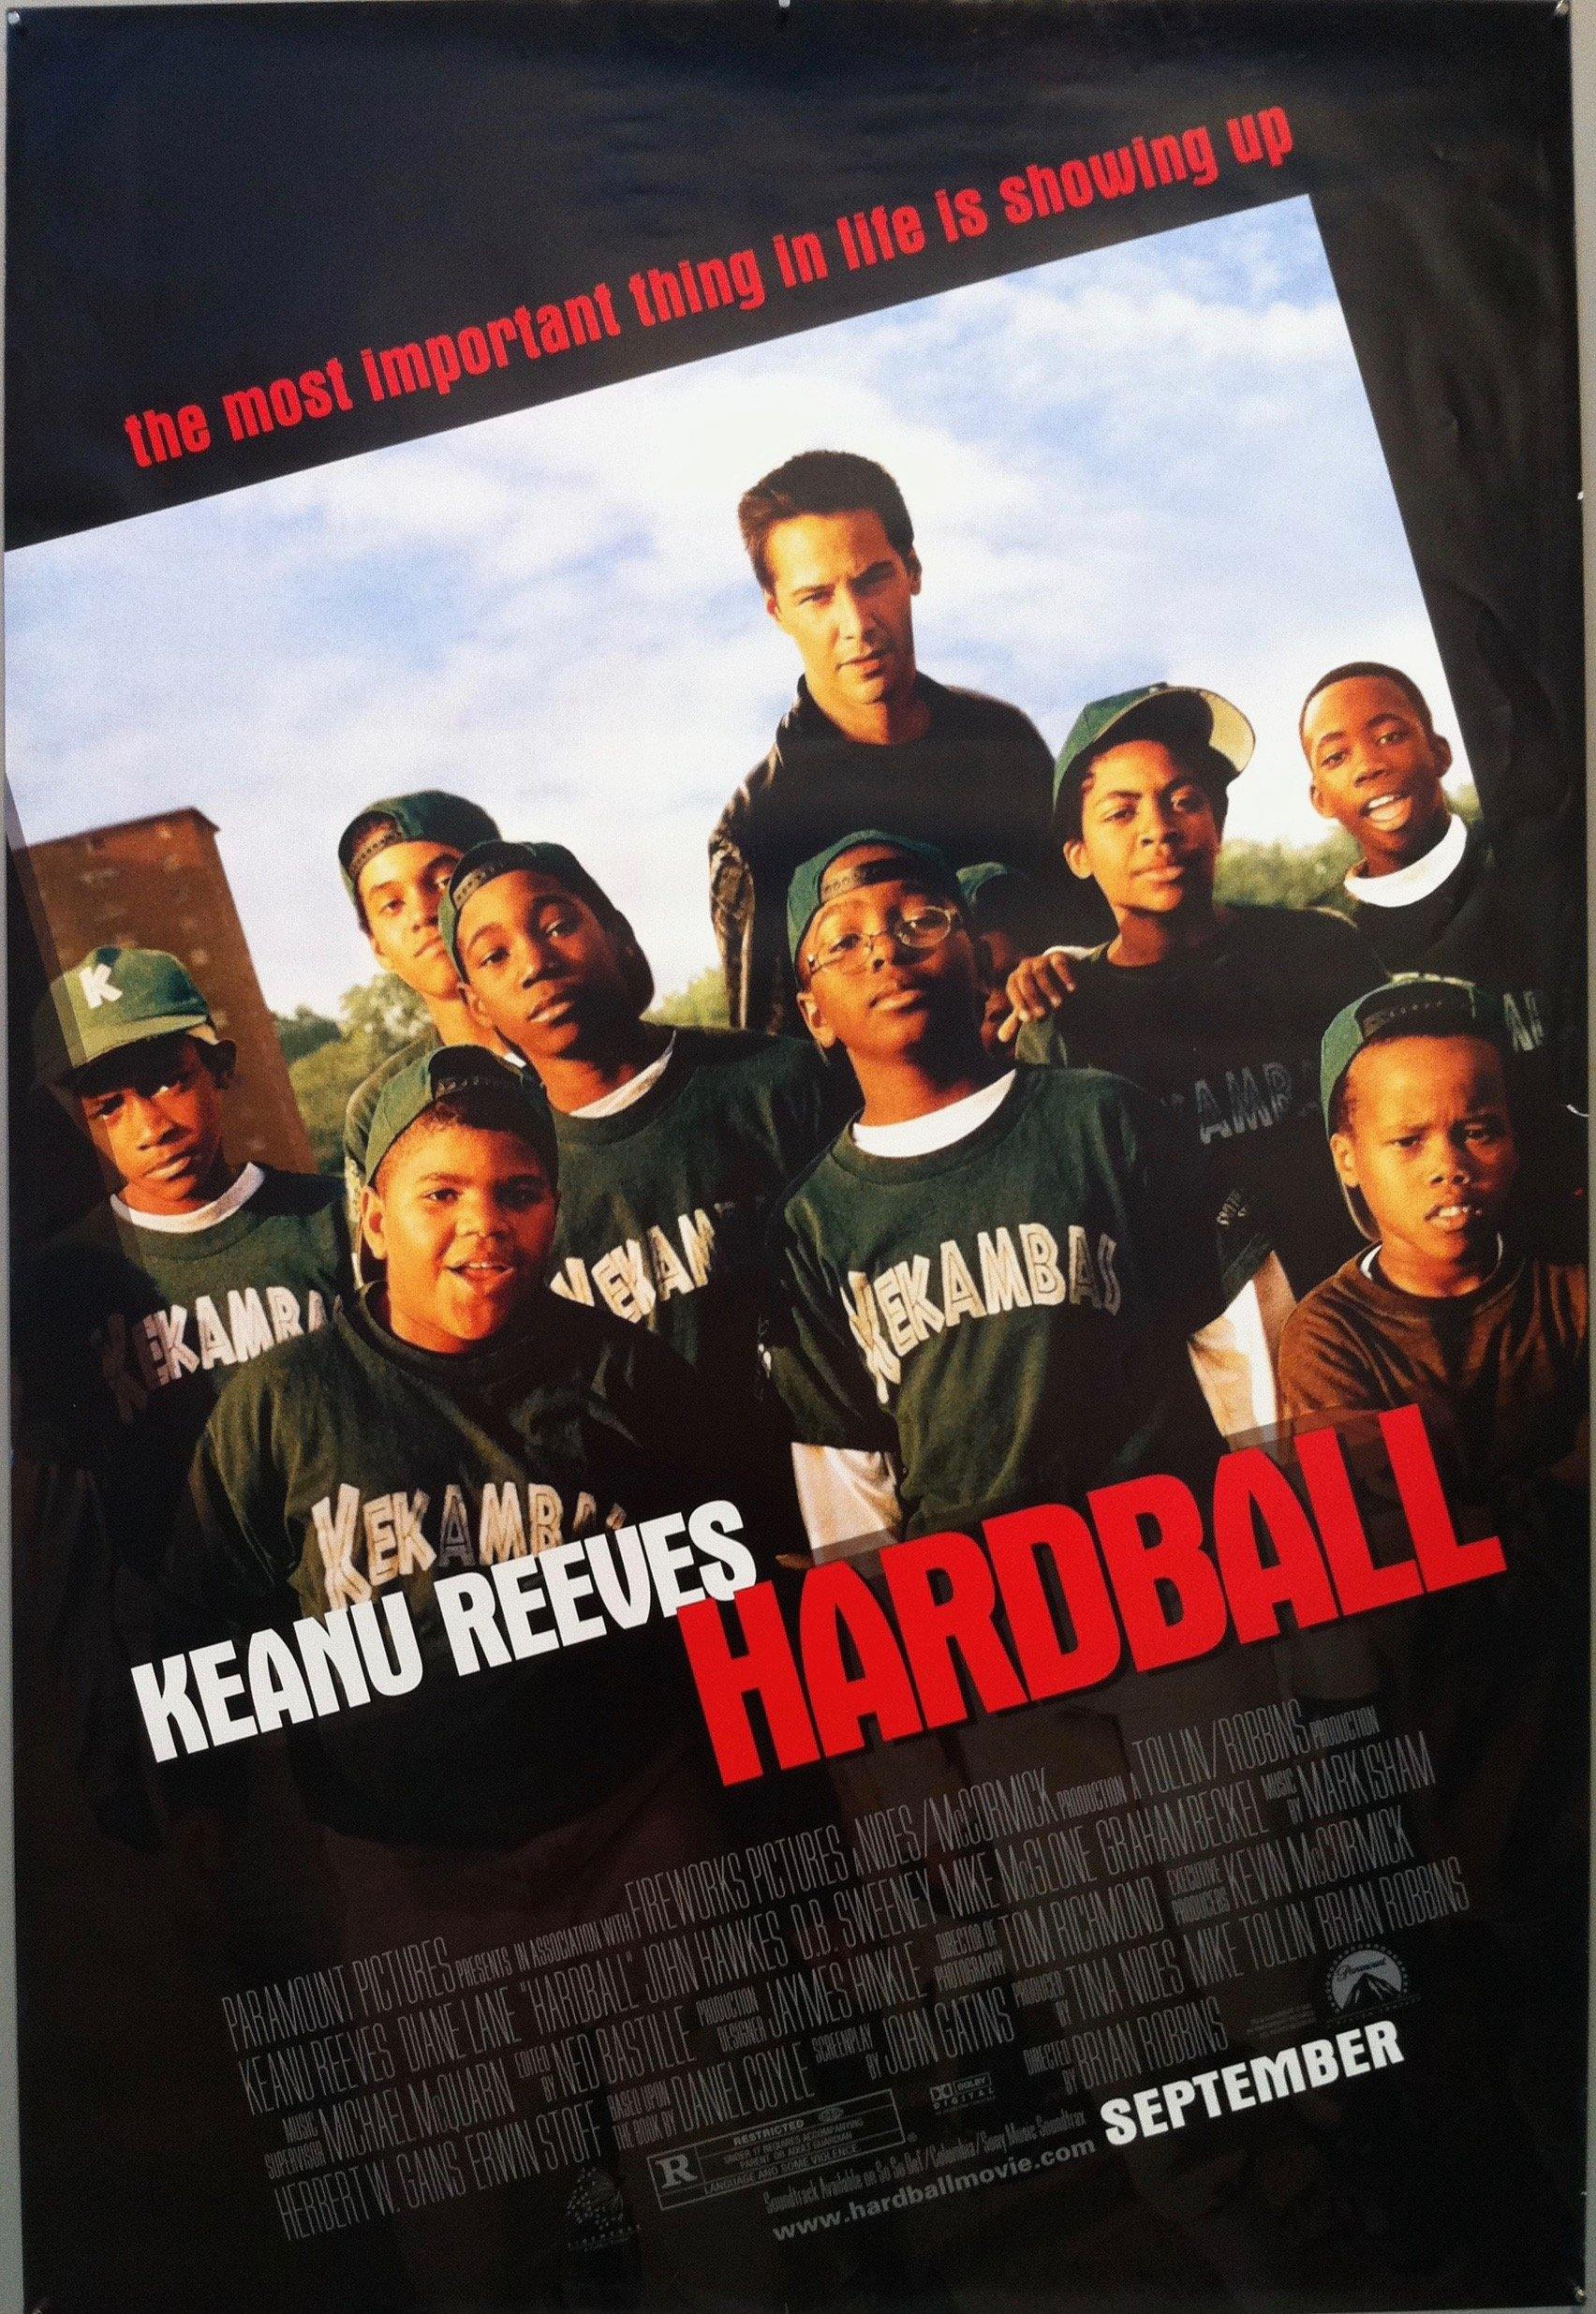 The poster for the movie Hardball